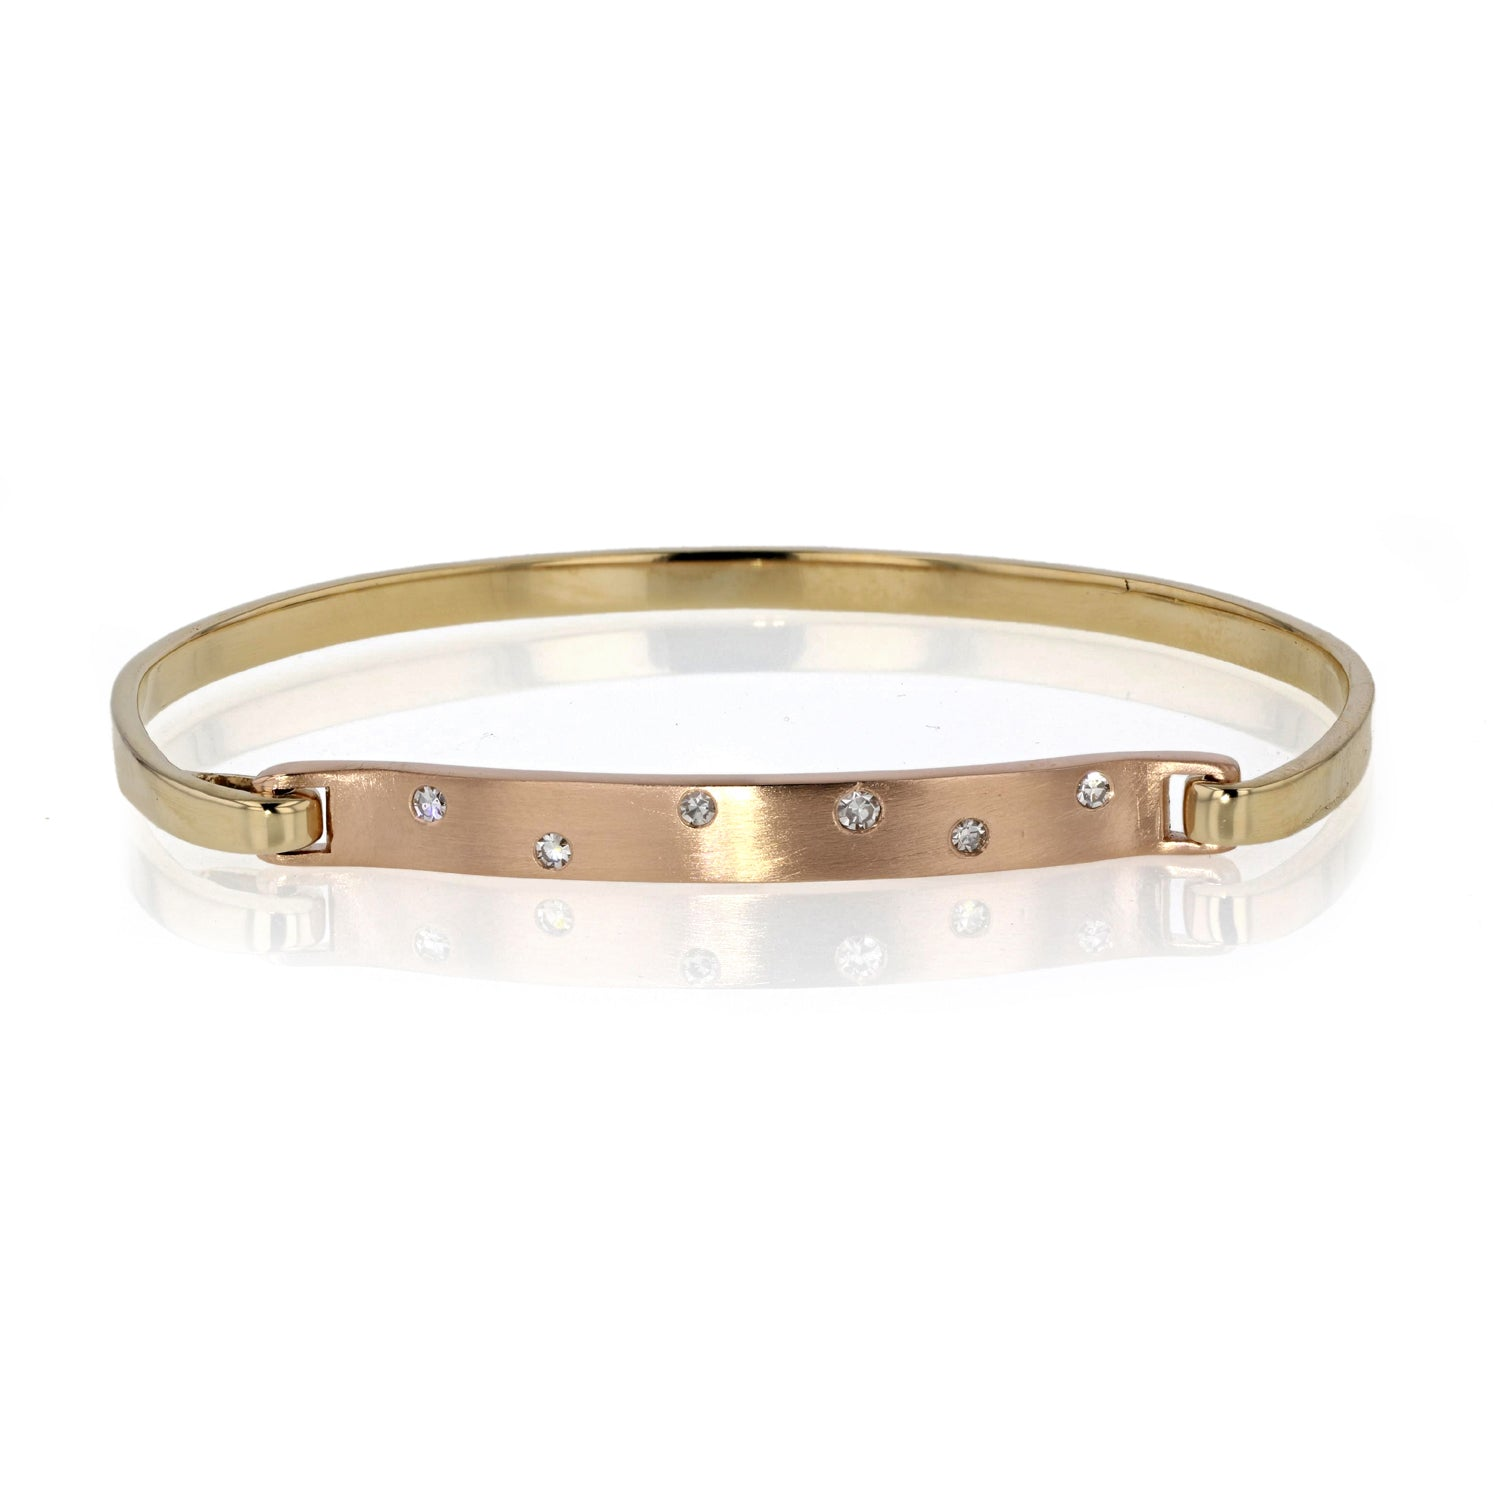 Click on Bracelet 18K Yellow and Rose gold with Sprinkled Diamonds